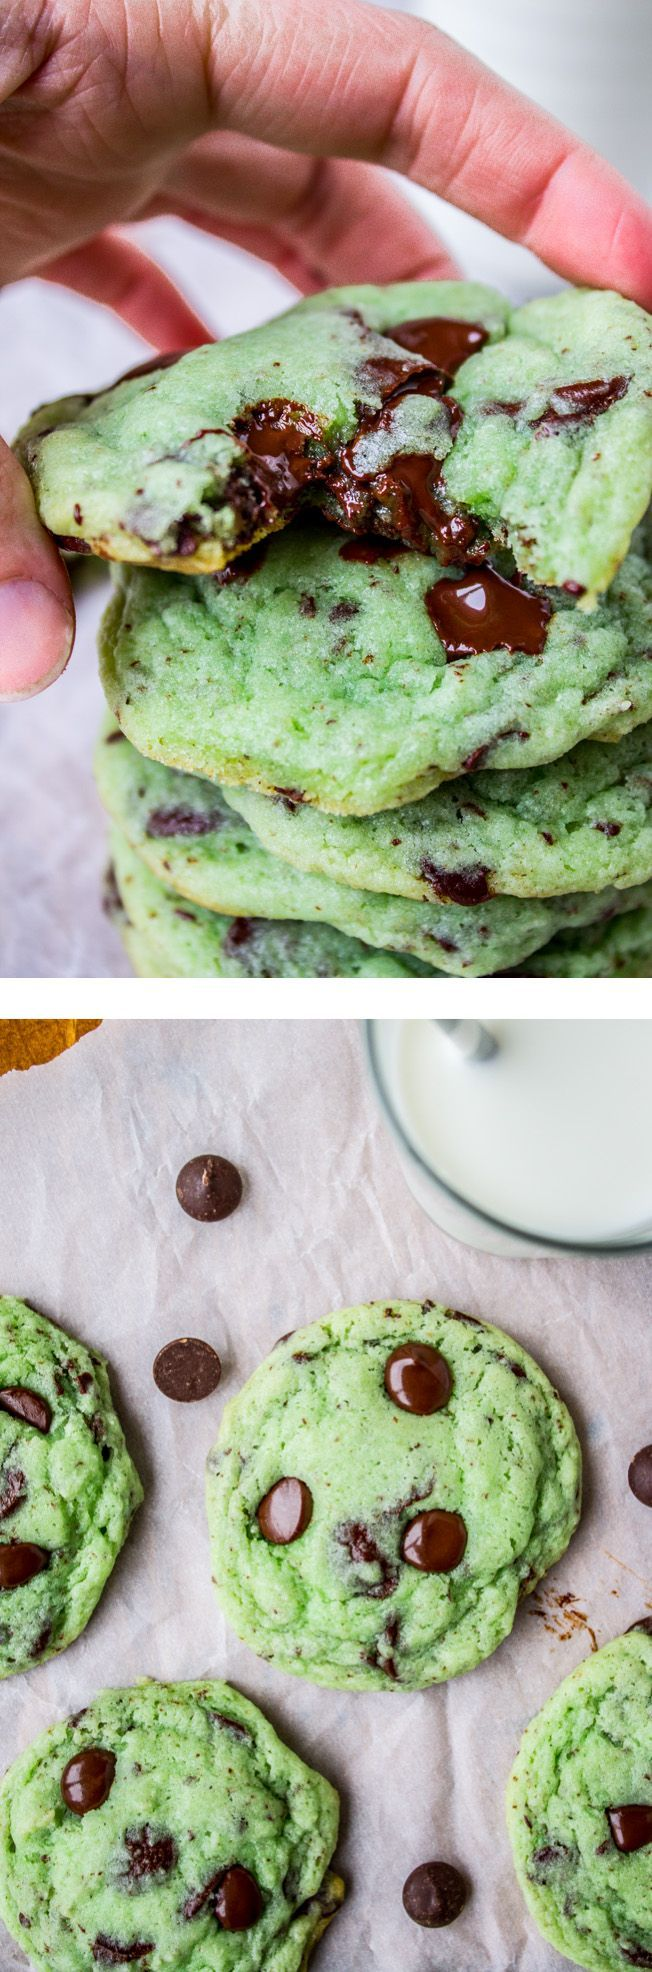 Mint Chocolate Chip Cookies //